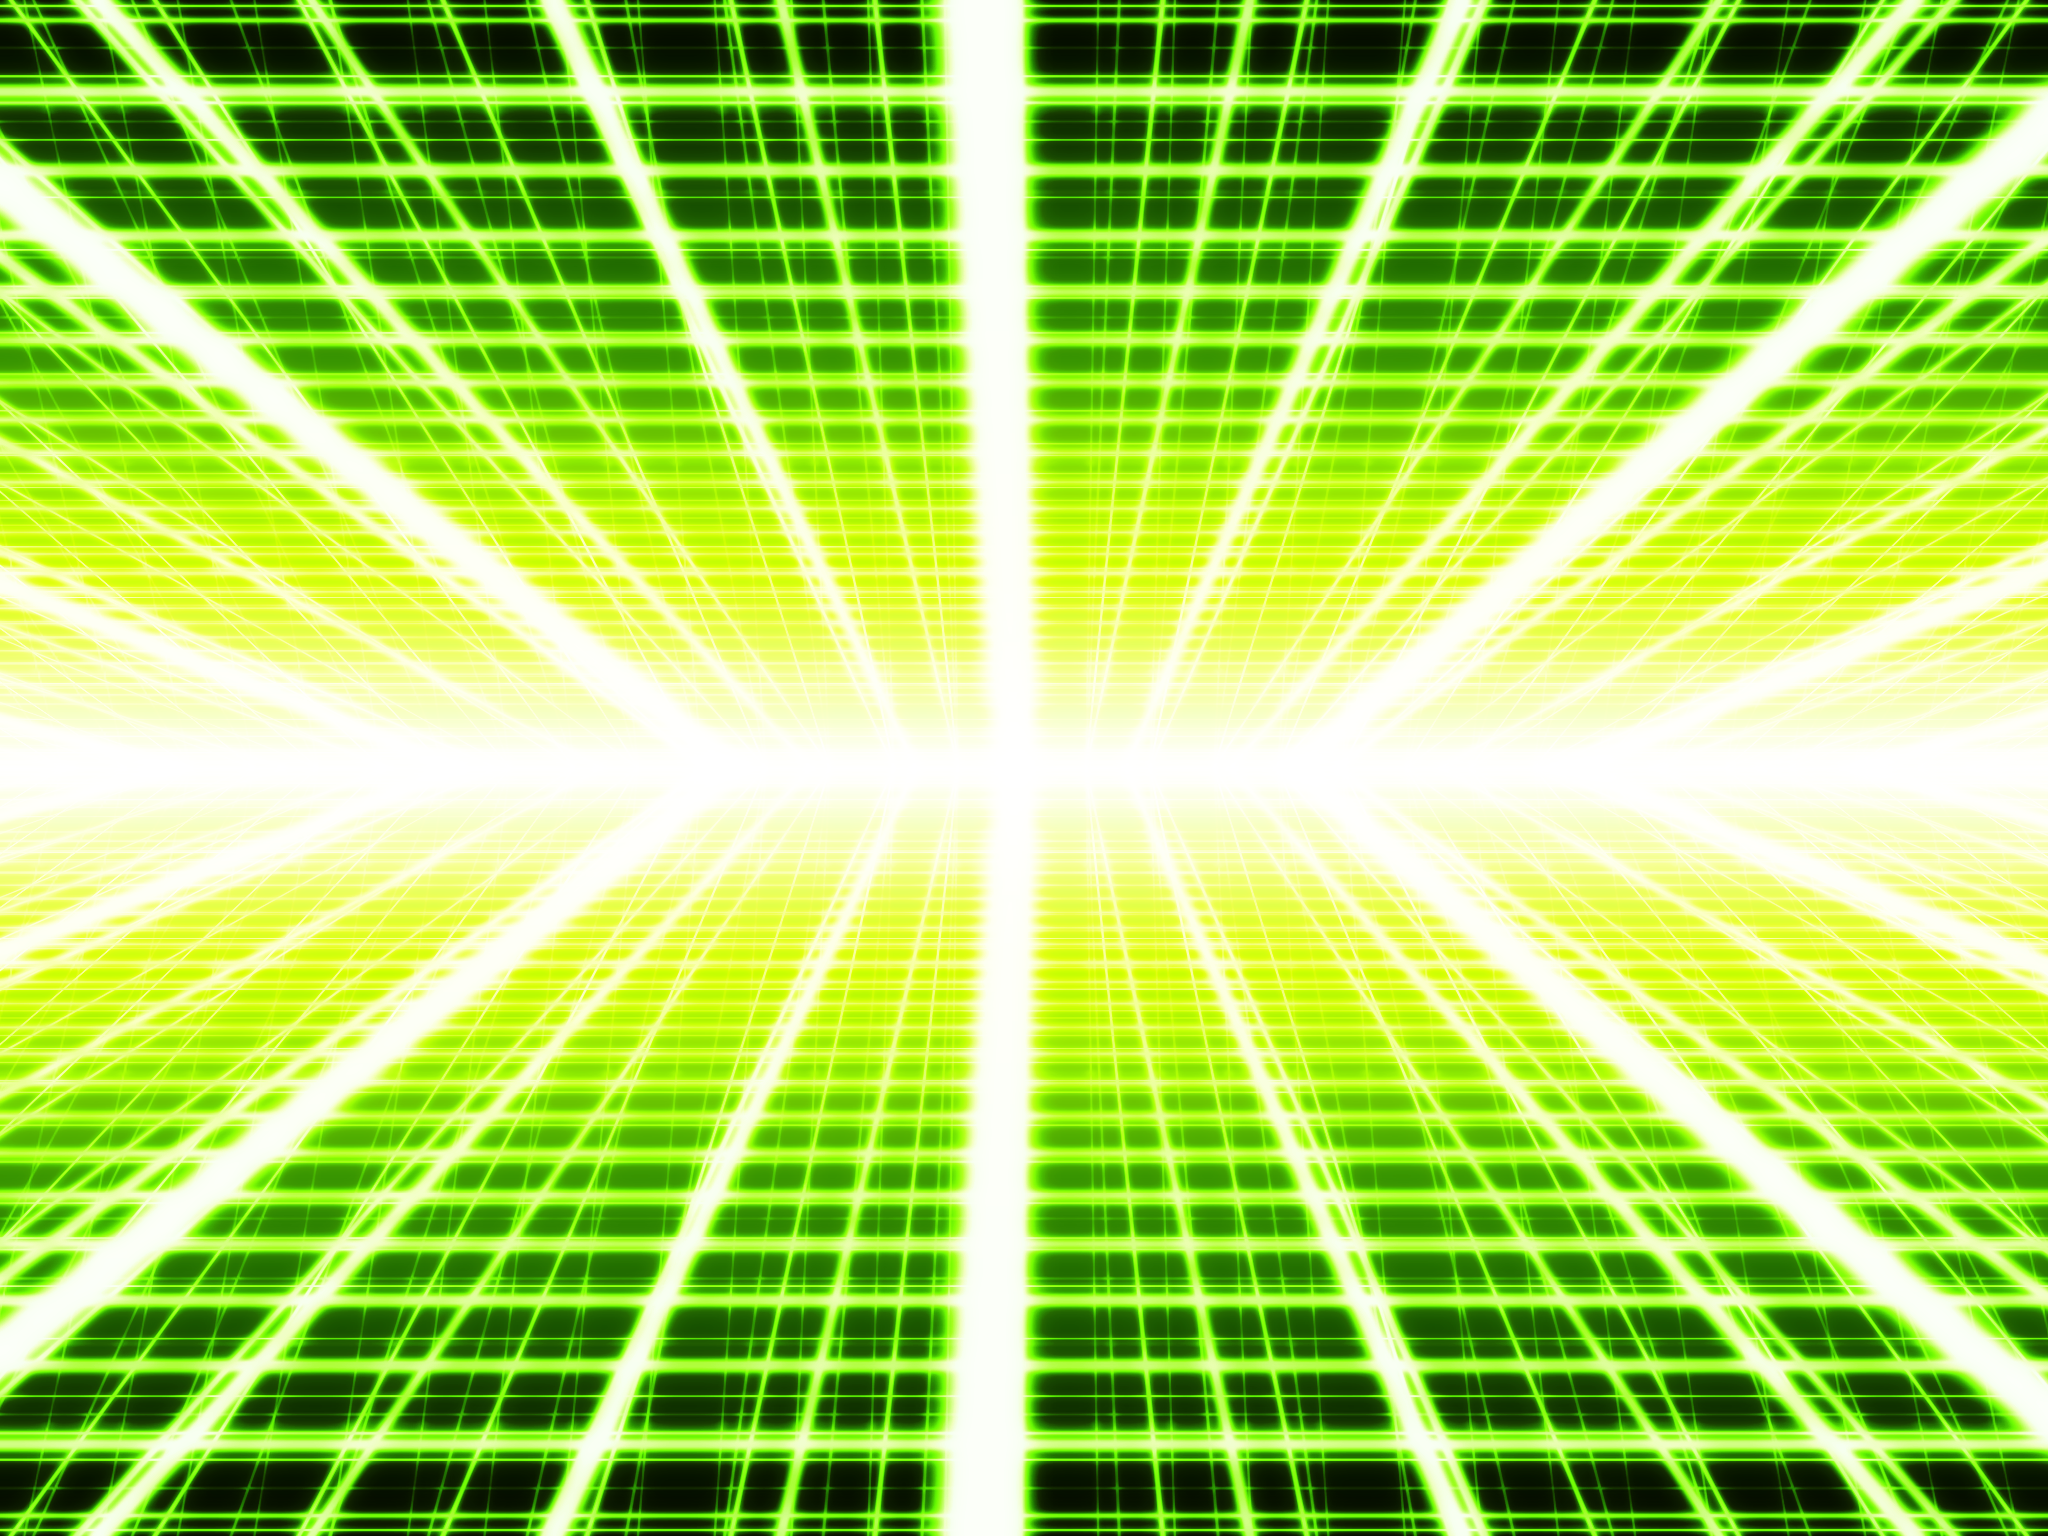 3D Cyber Grid Background by TBH-1138